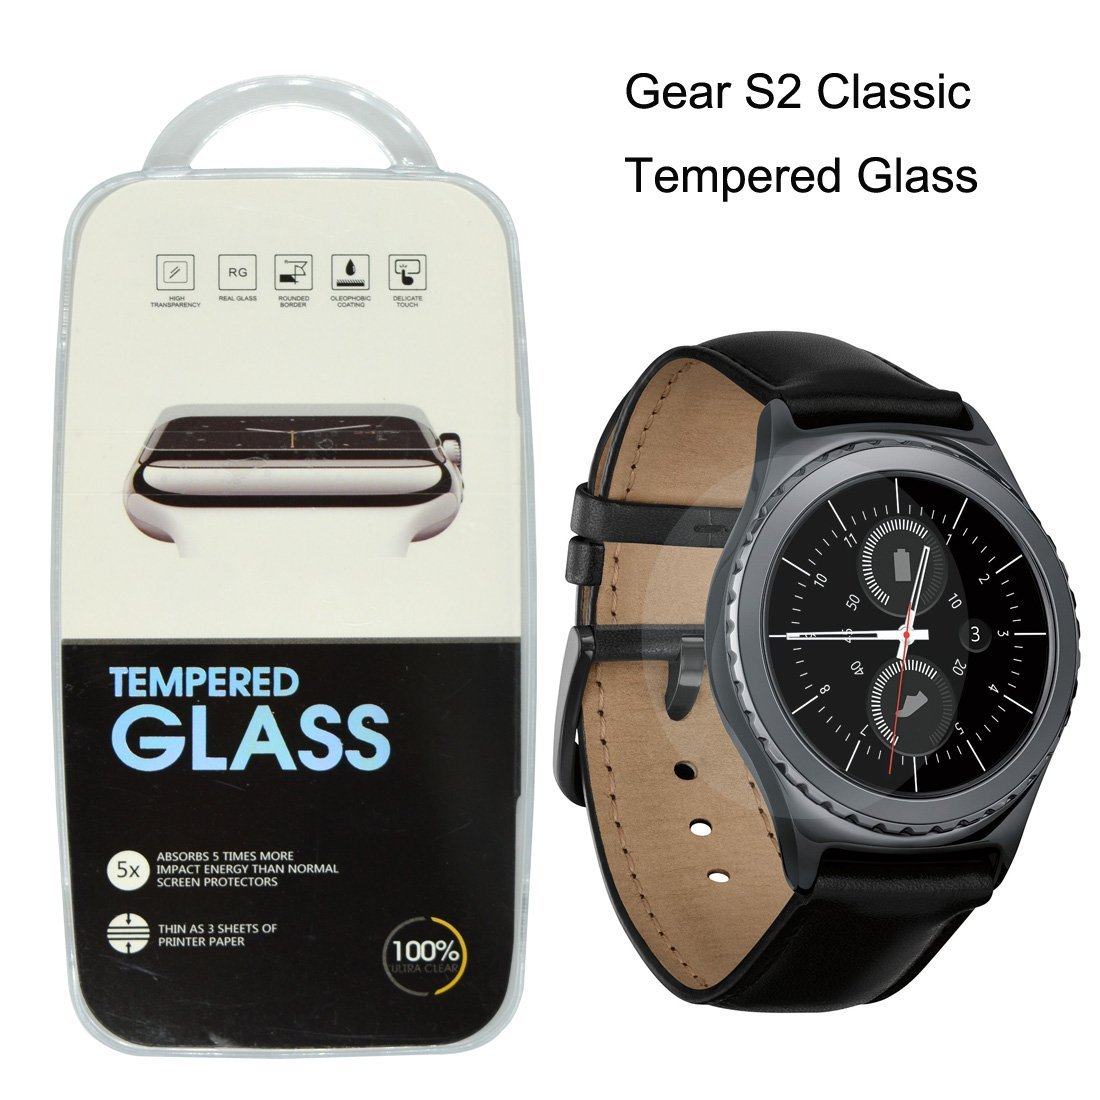 793df05e35c Get Quotations · Icerain Samsung Galaxy Gear S2 Classic Tempered Glass  Screen Protector